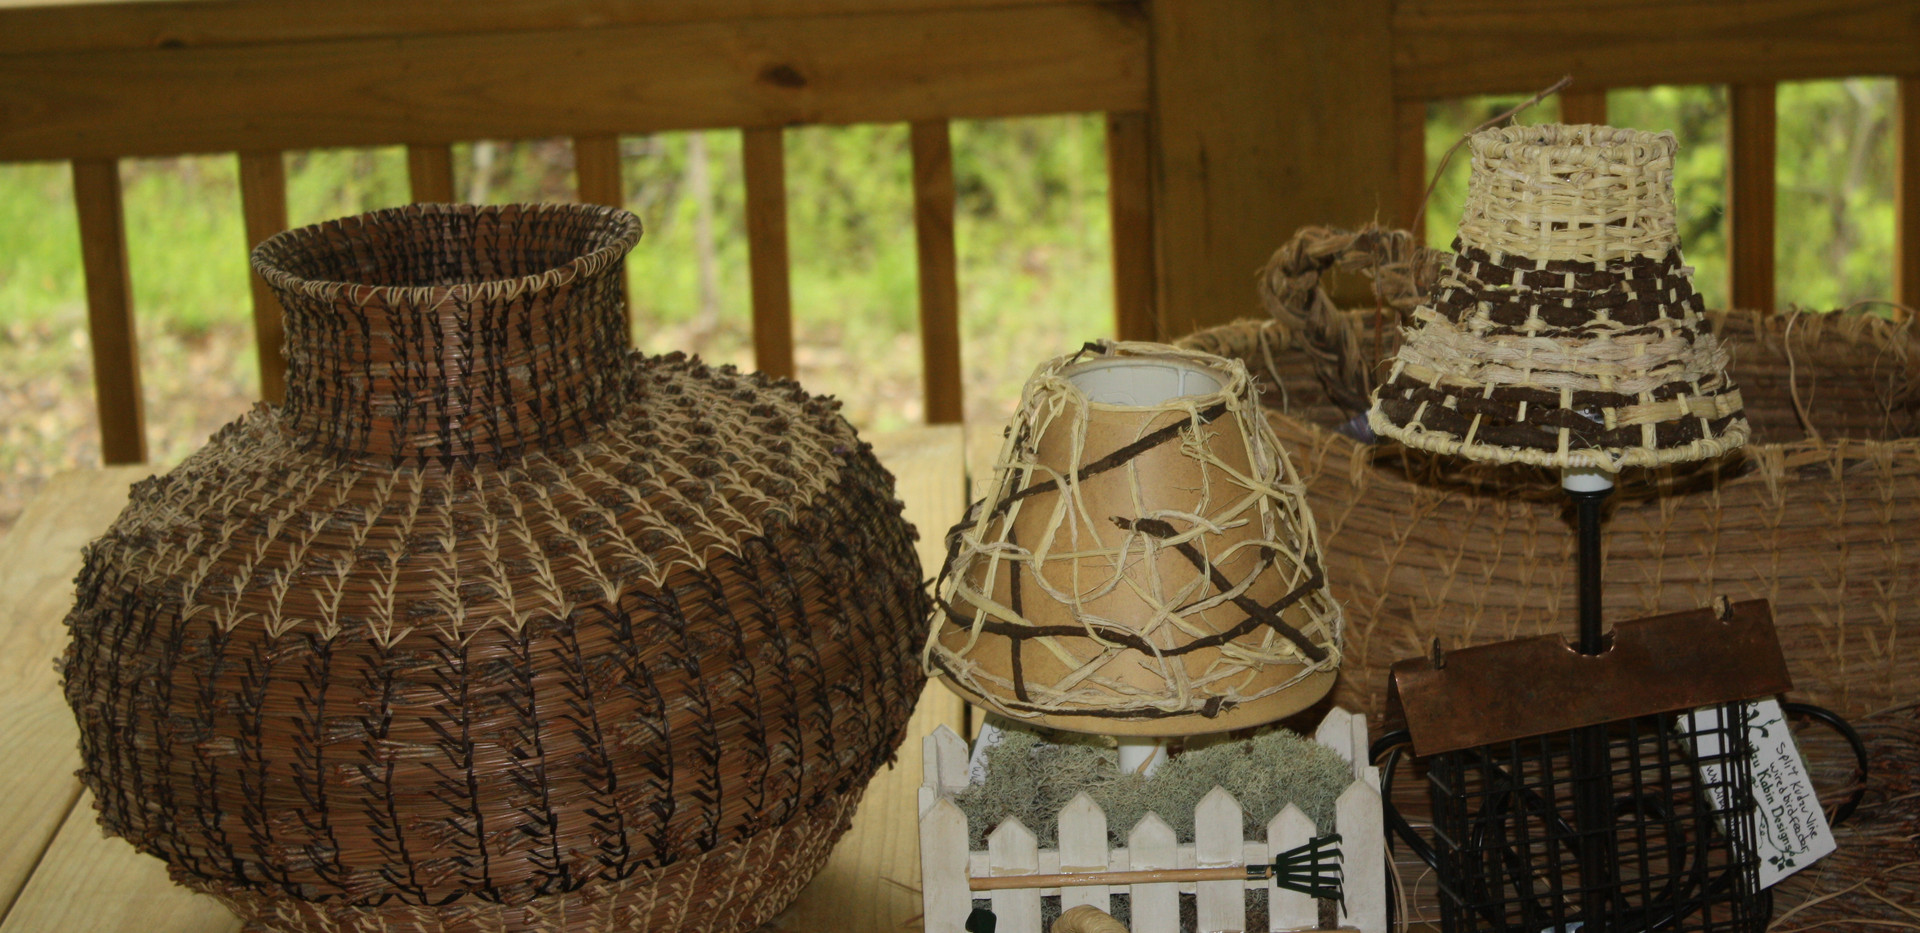 baskets display.JPG